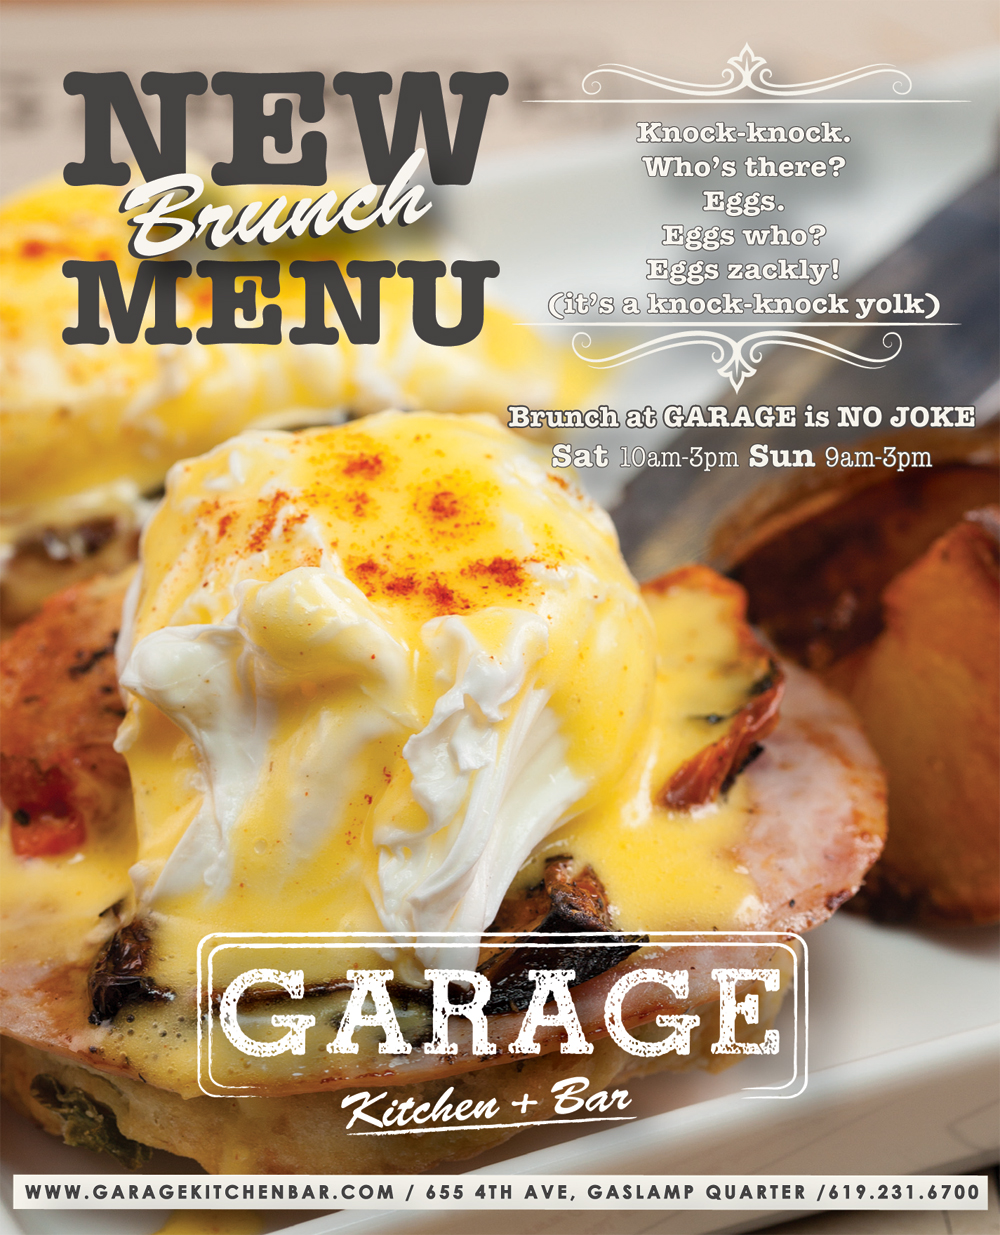 New Brunch Menu premieres 10/10